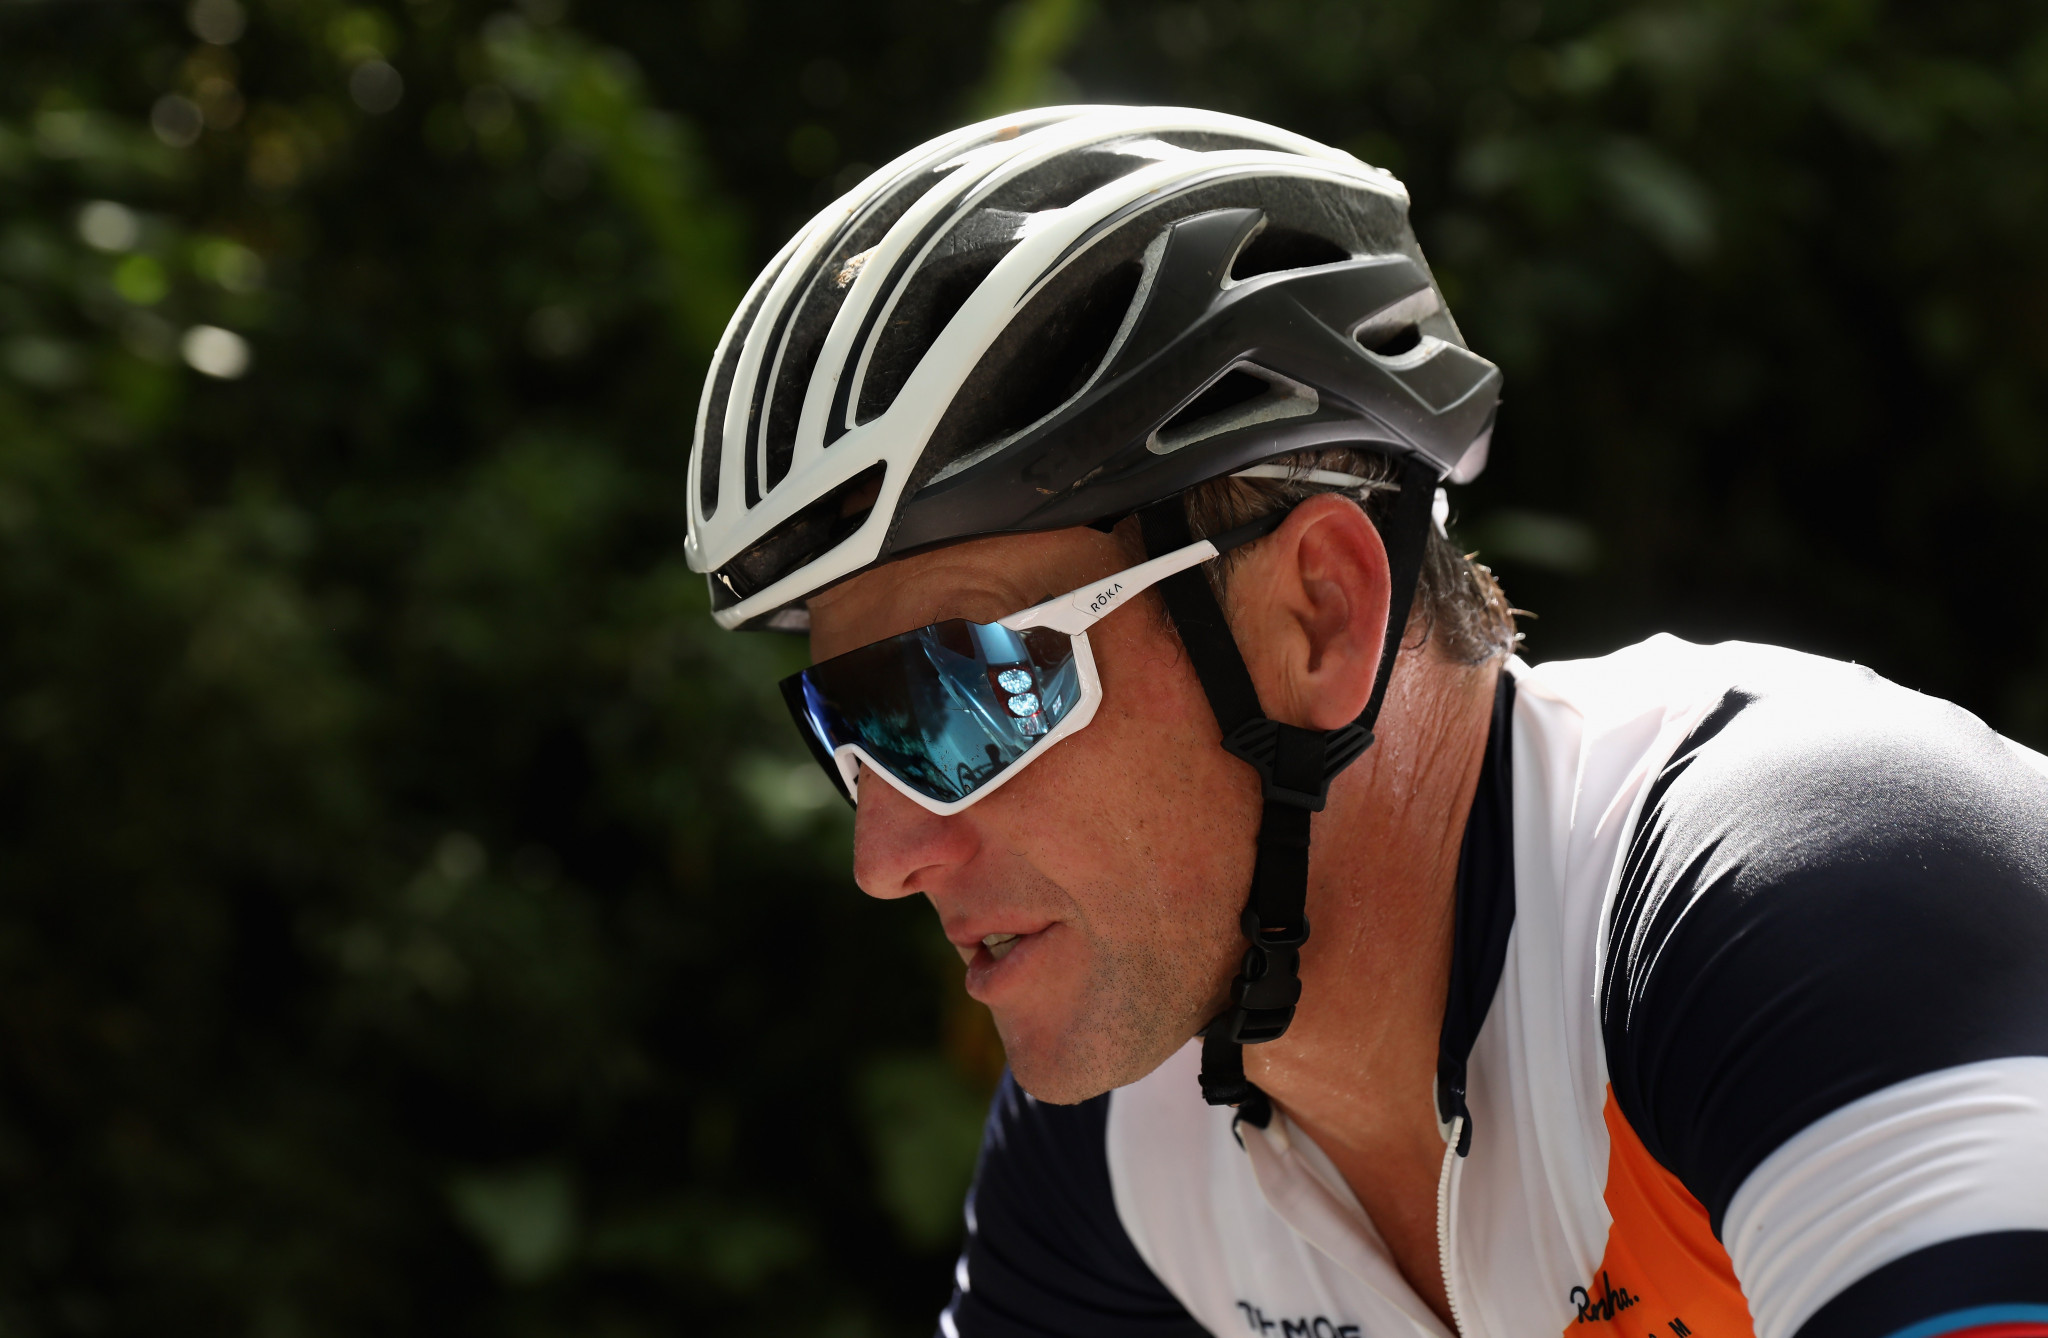 Doping researcher who defended Armstrong handed doping ban